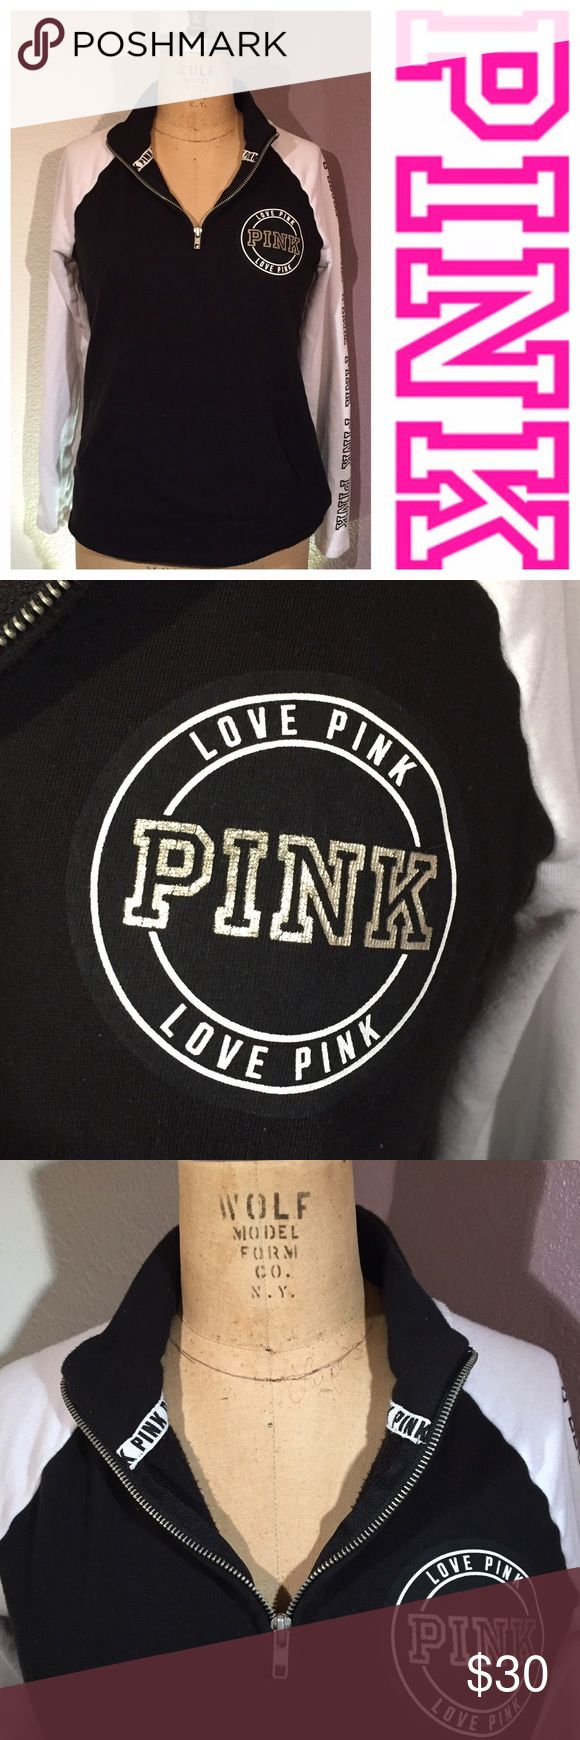 Black and white PINK half-zipper pullover 💕 I am selling this black and white PINK half-zipper pullover size small 💕 no holes or stains! PINK Victoria's Secret Tops Sweatshirts & Hoodies